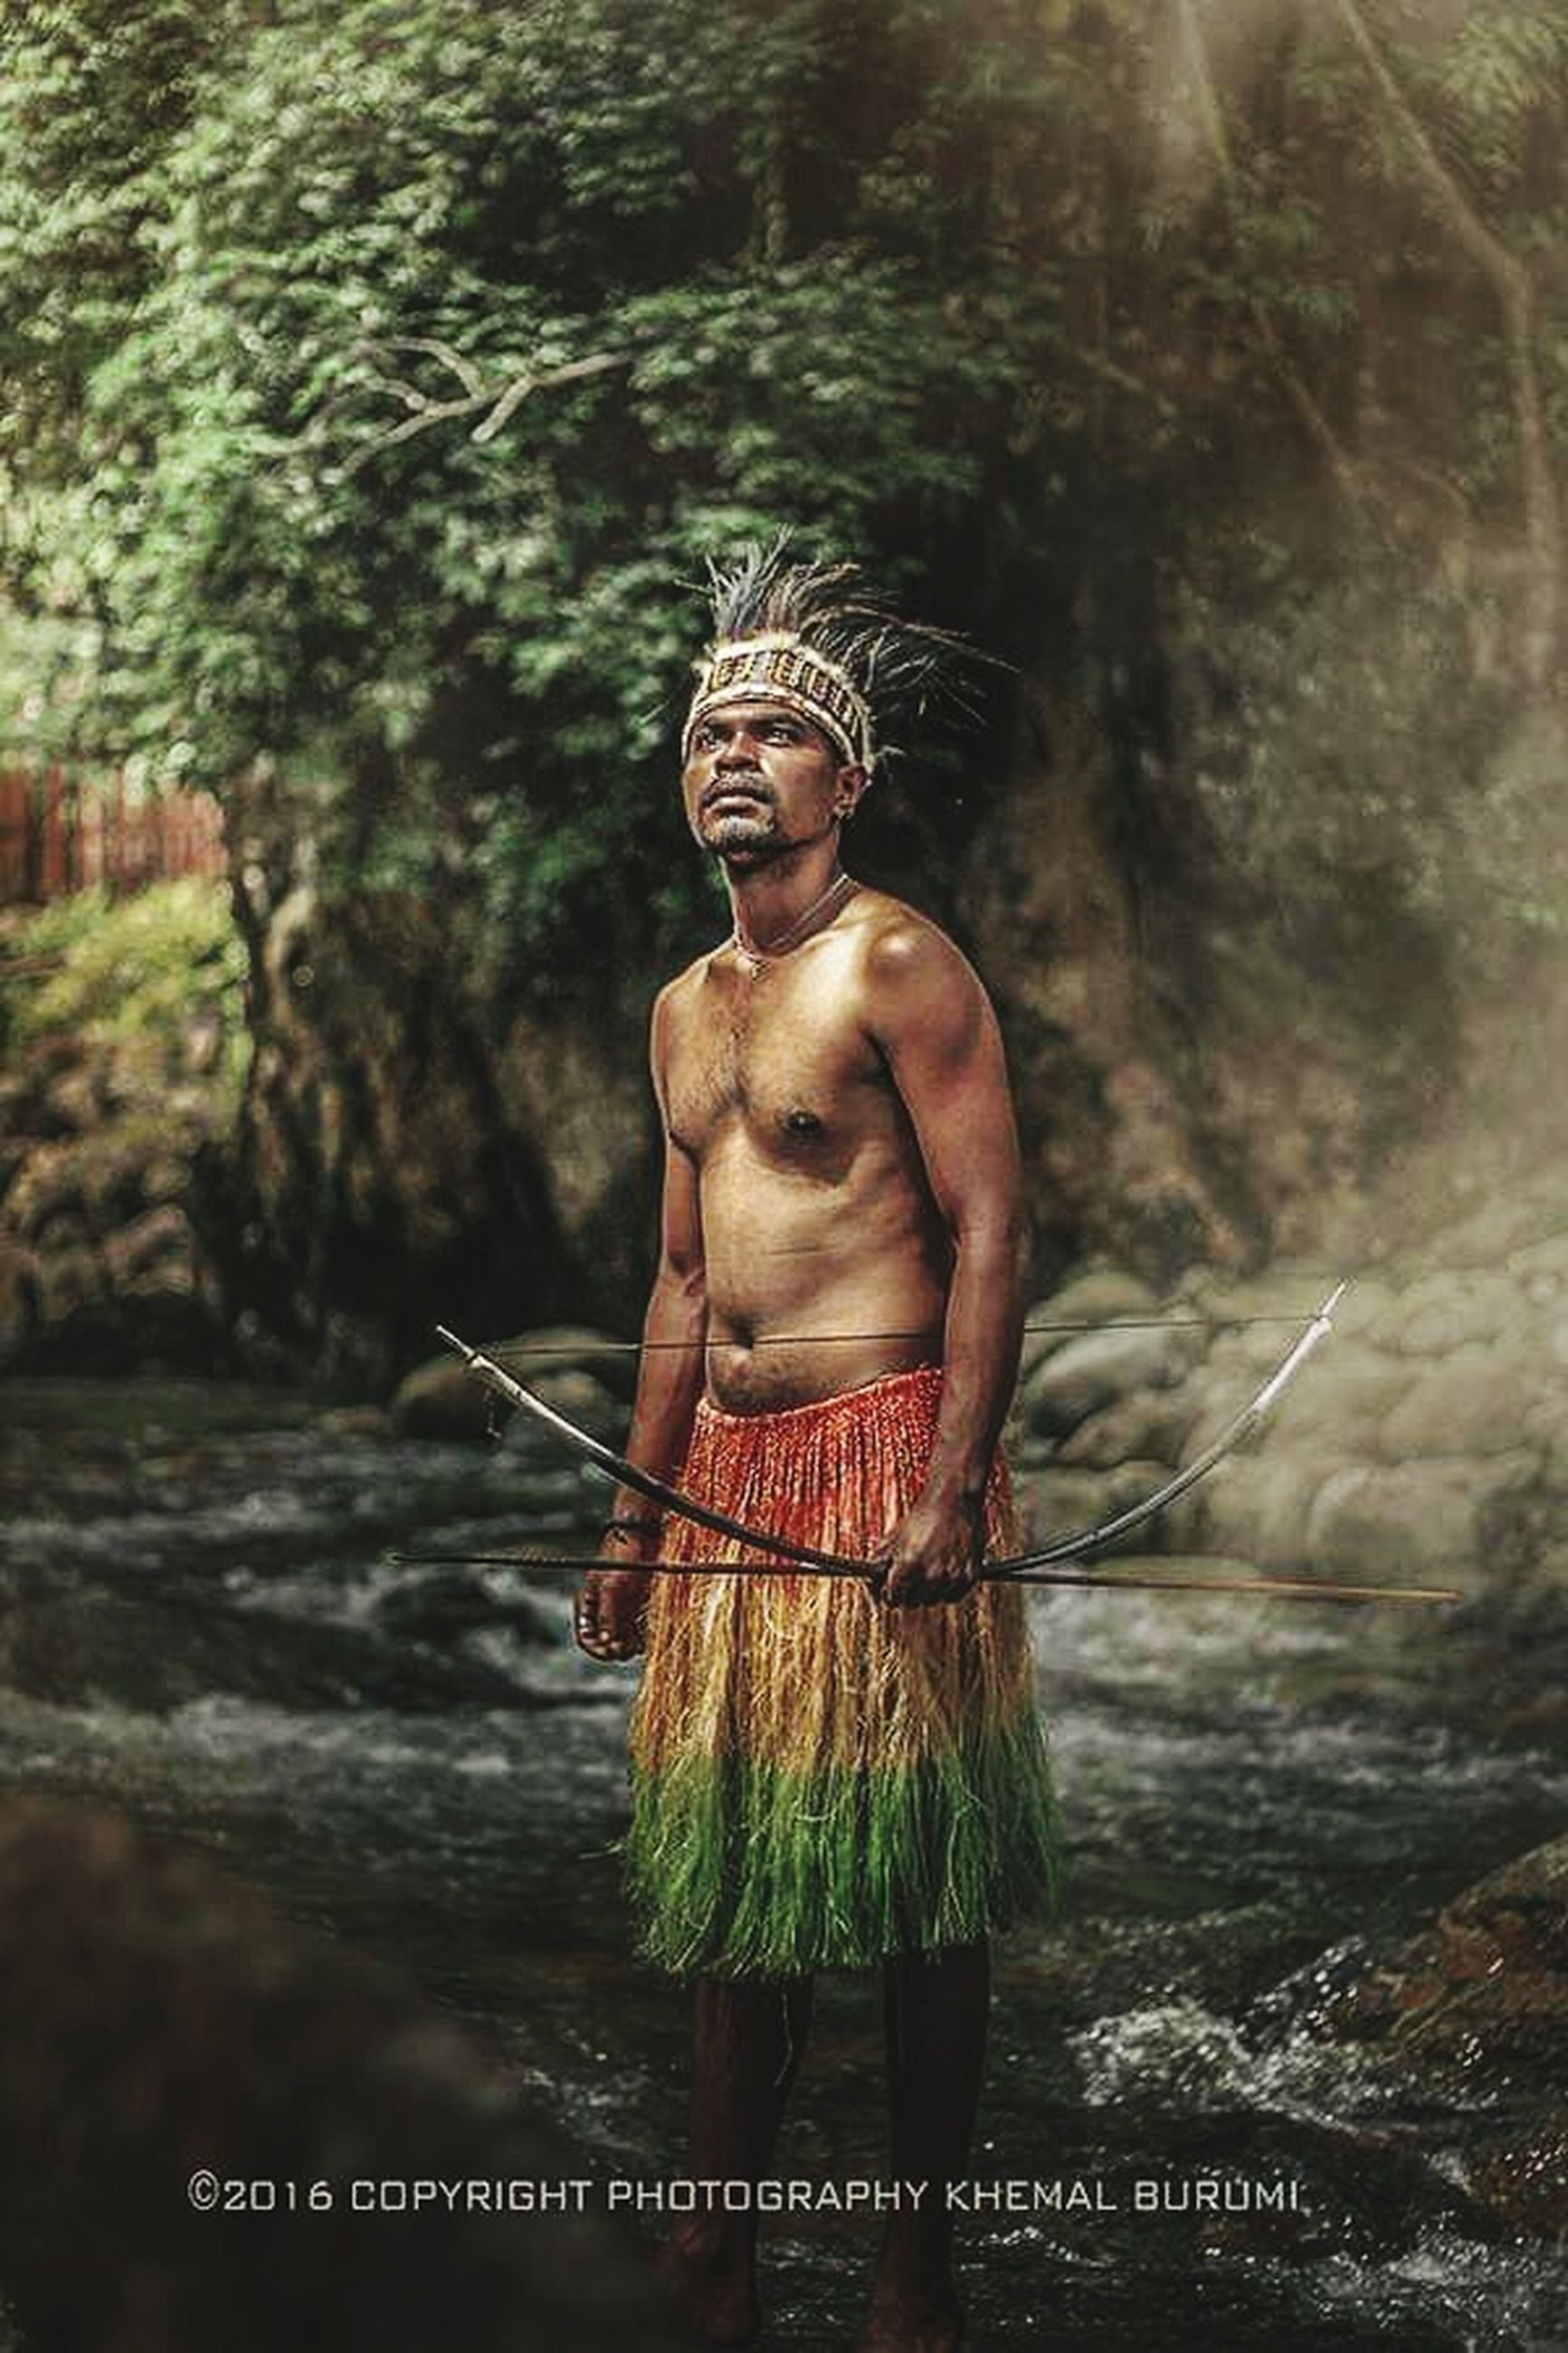 plant, nature, people, shirtless, tree, land, three quarter length, real people, front view, men, standing, outdoors, day, holding, focus on foreground, adult, crown